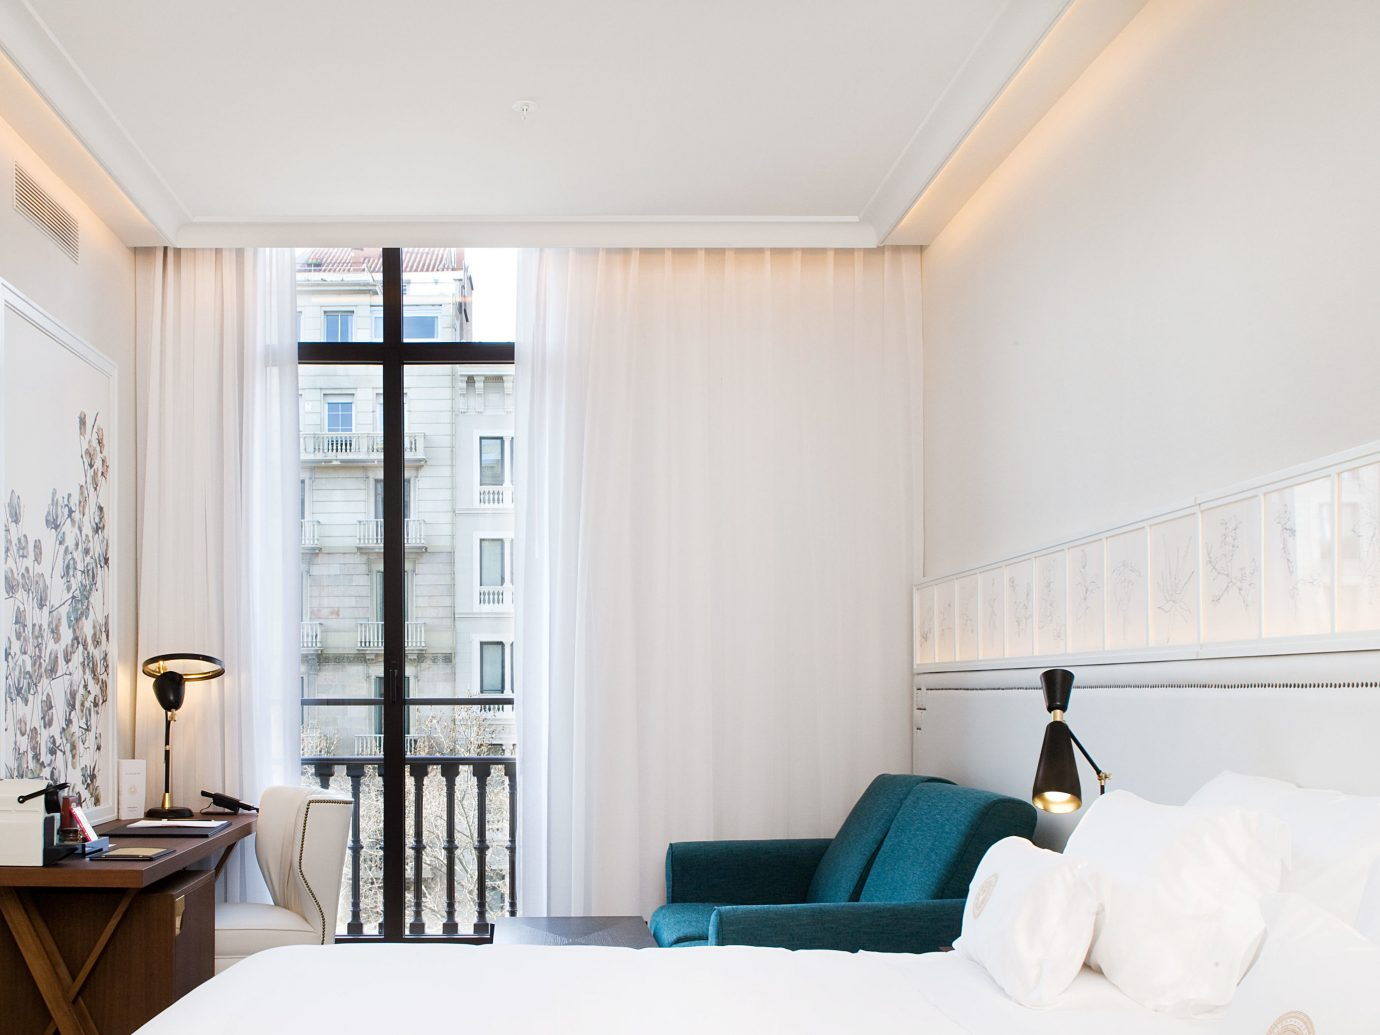 Boutique Hotels Hotels indoor wall ceiling floor room window property Living home interior design living room furniture Bedroom real estate Design window covering estate apartment Suite